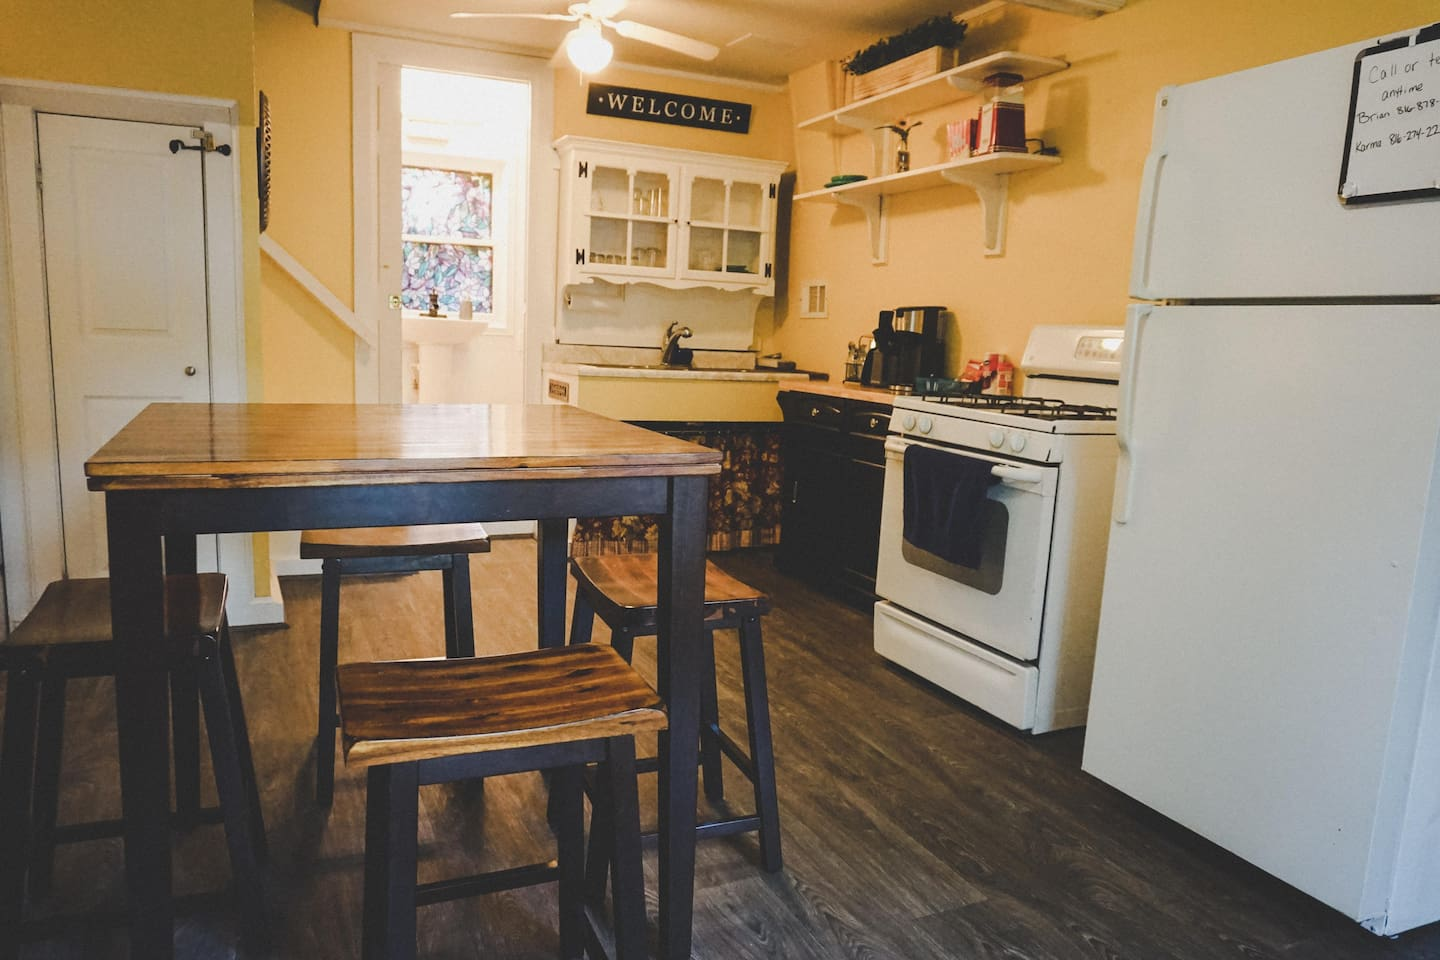 Totally repainted and new flooring, your kitchen comes equipped with everything you need to cook a lovely meal, or just nuke a burrito. Also a stylish dining room table